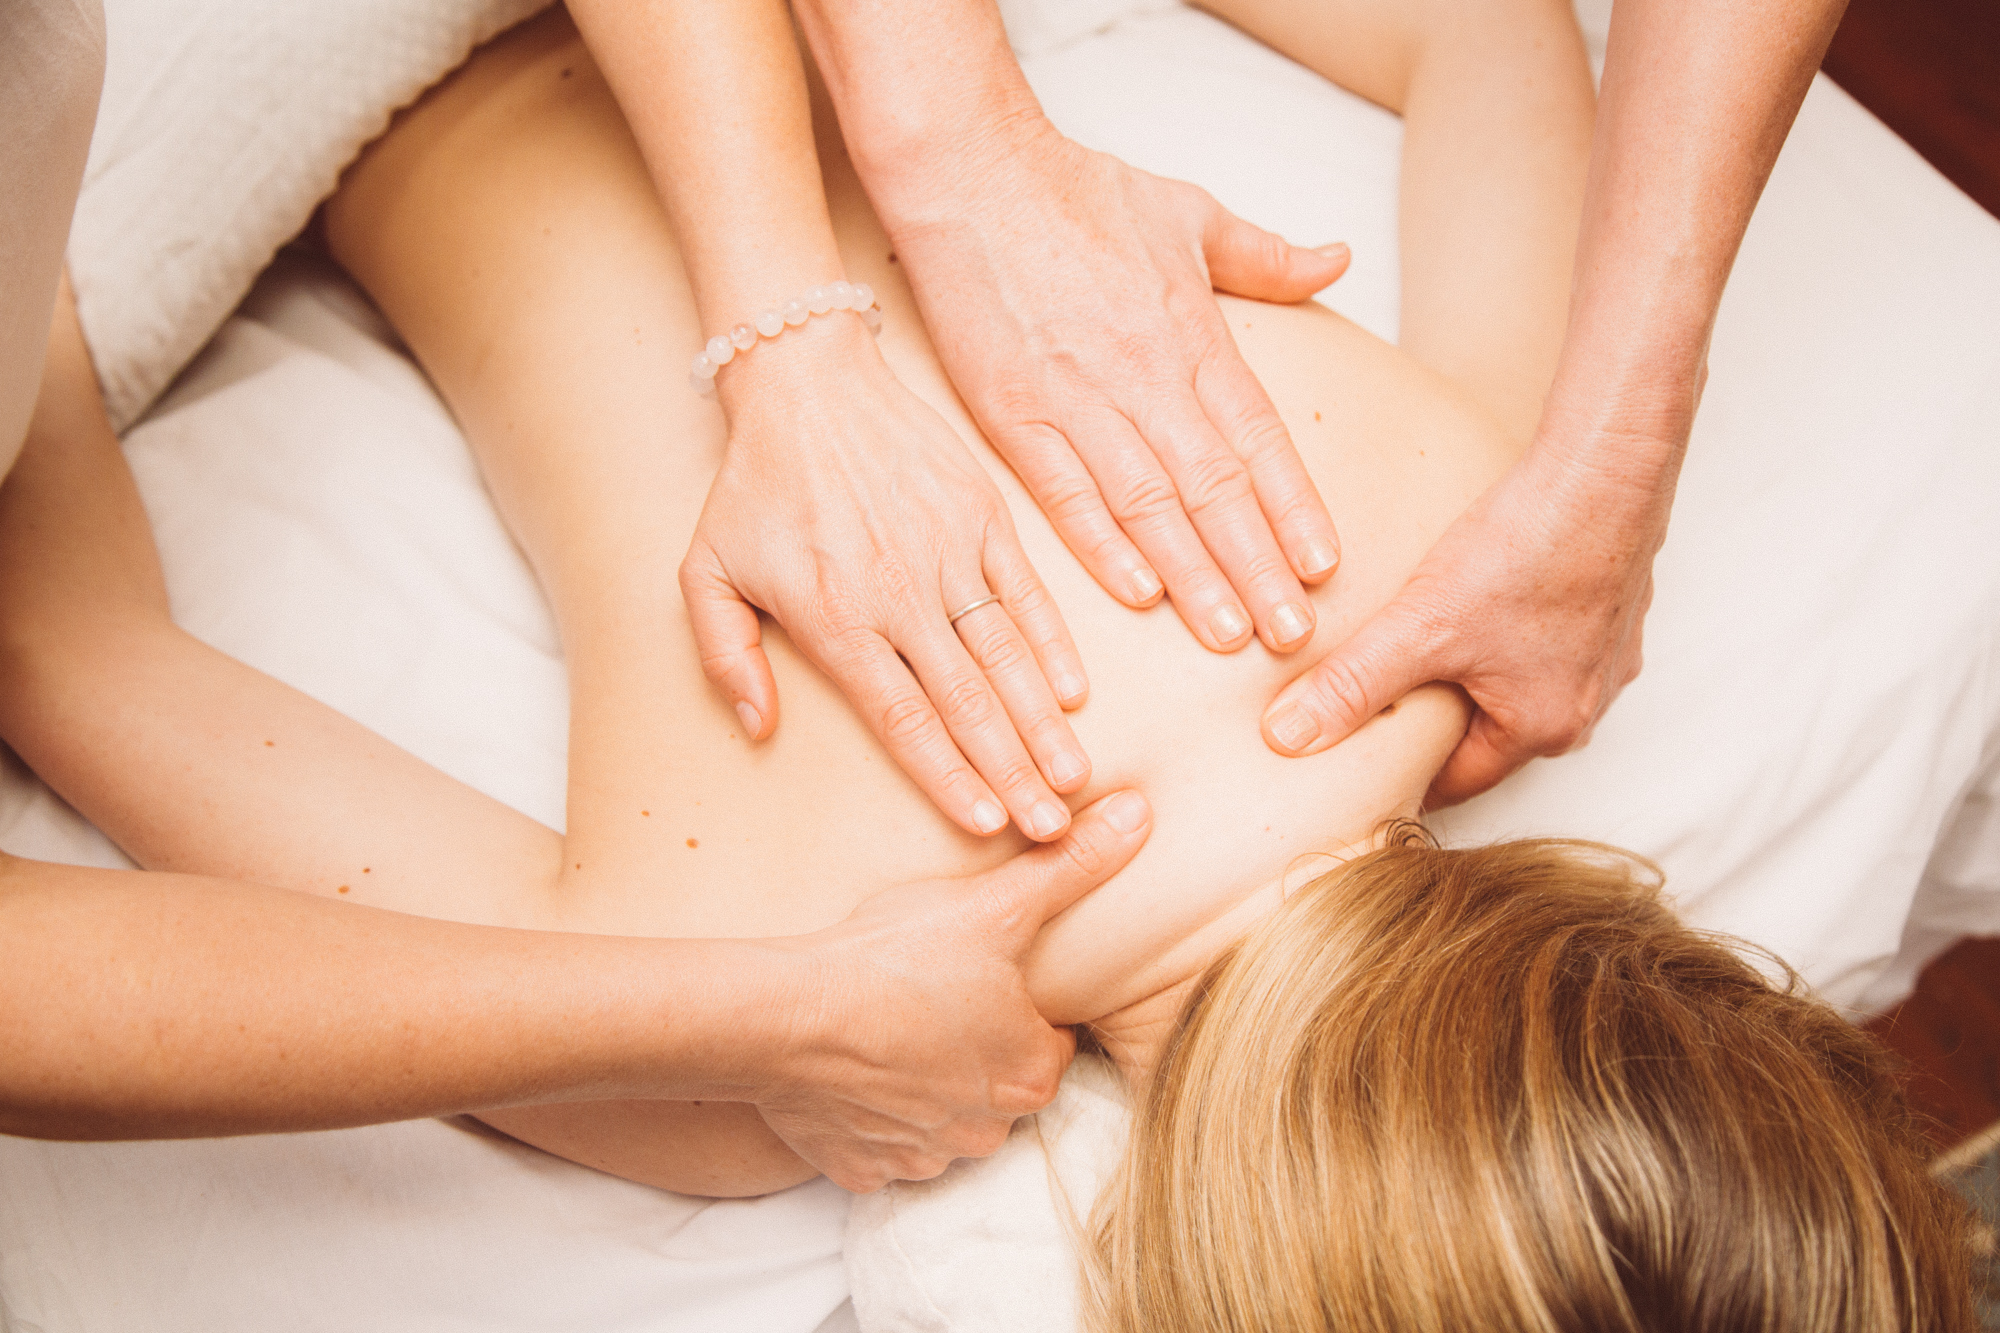 Abhyanga - is the classic Ayurvedic oil massage that uses the skillful application of medicinal oils with specific nurturing strokes. It activates the energetic centers (Marma points), breaks up impurities, and stimulates arterial and lymphatic circulation. Learn how to perform this treatment alone and in synchrony with another technician.